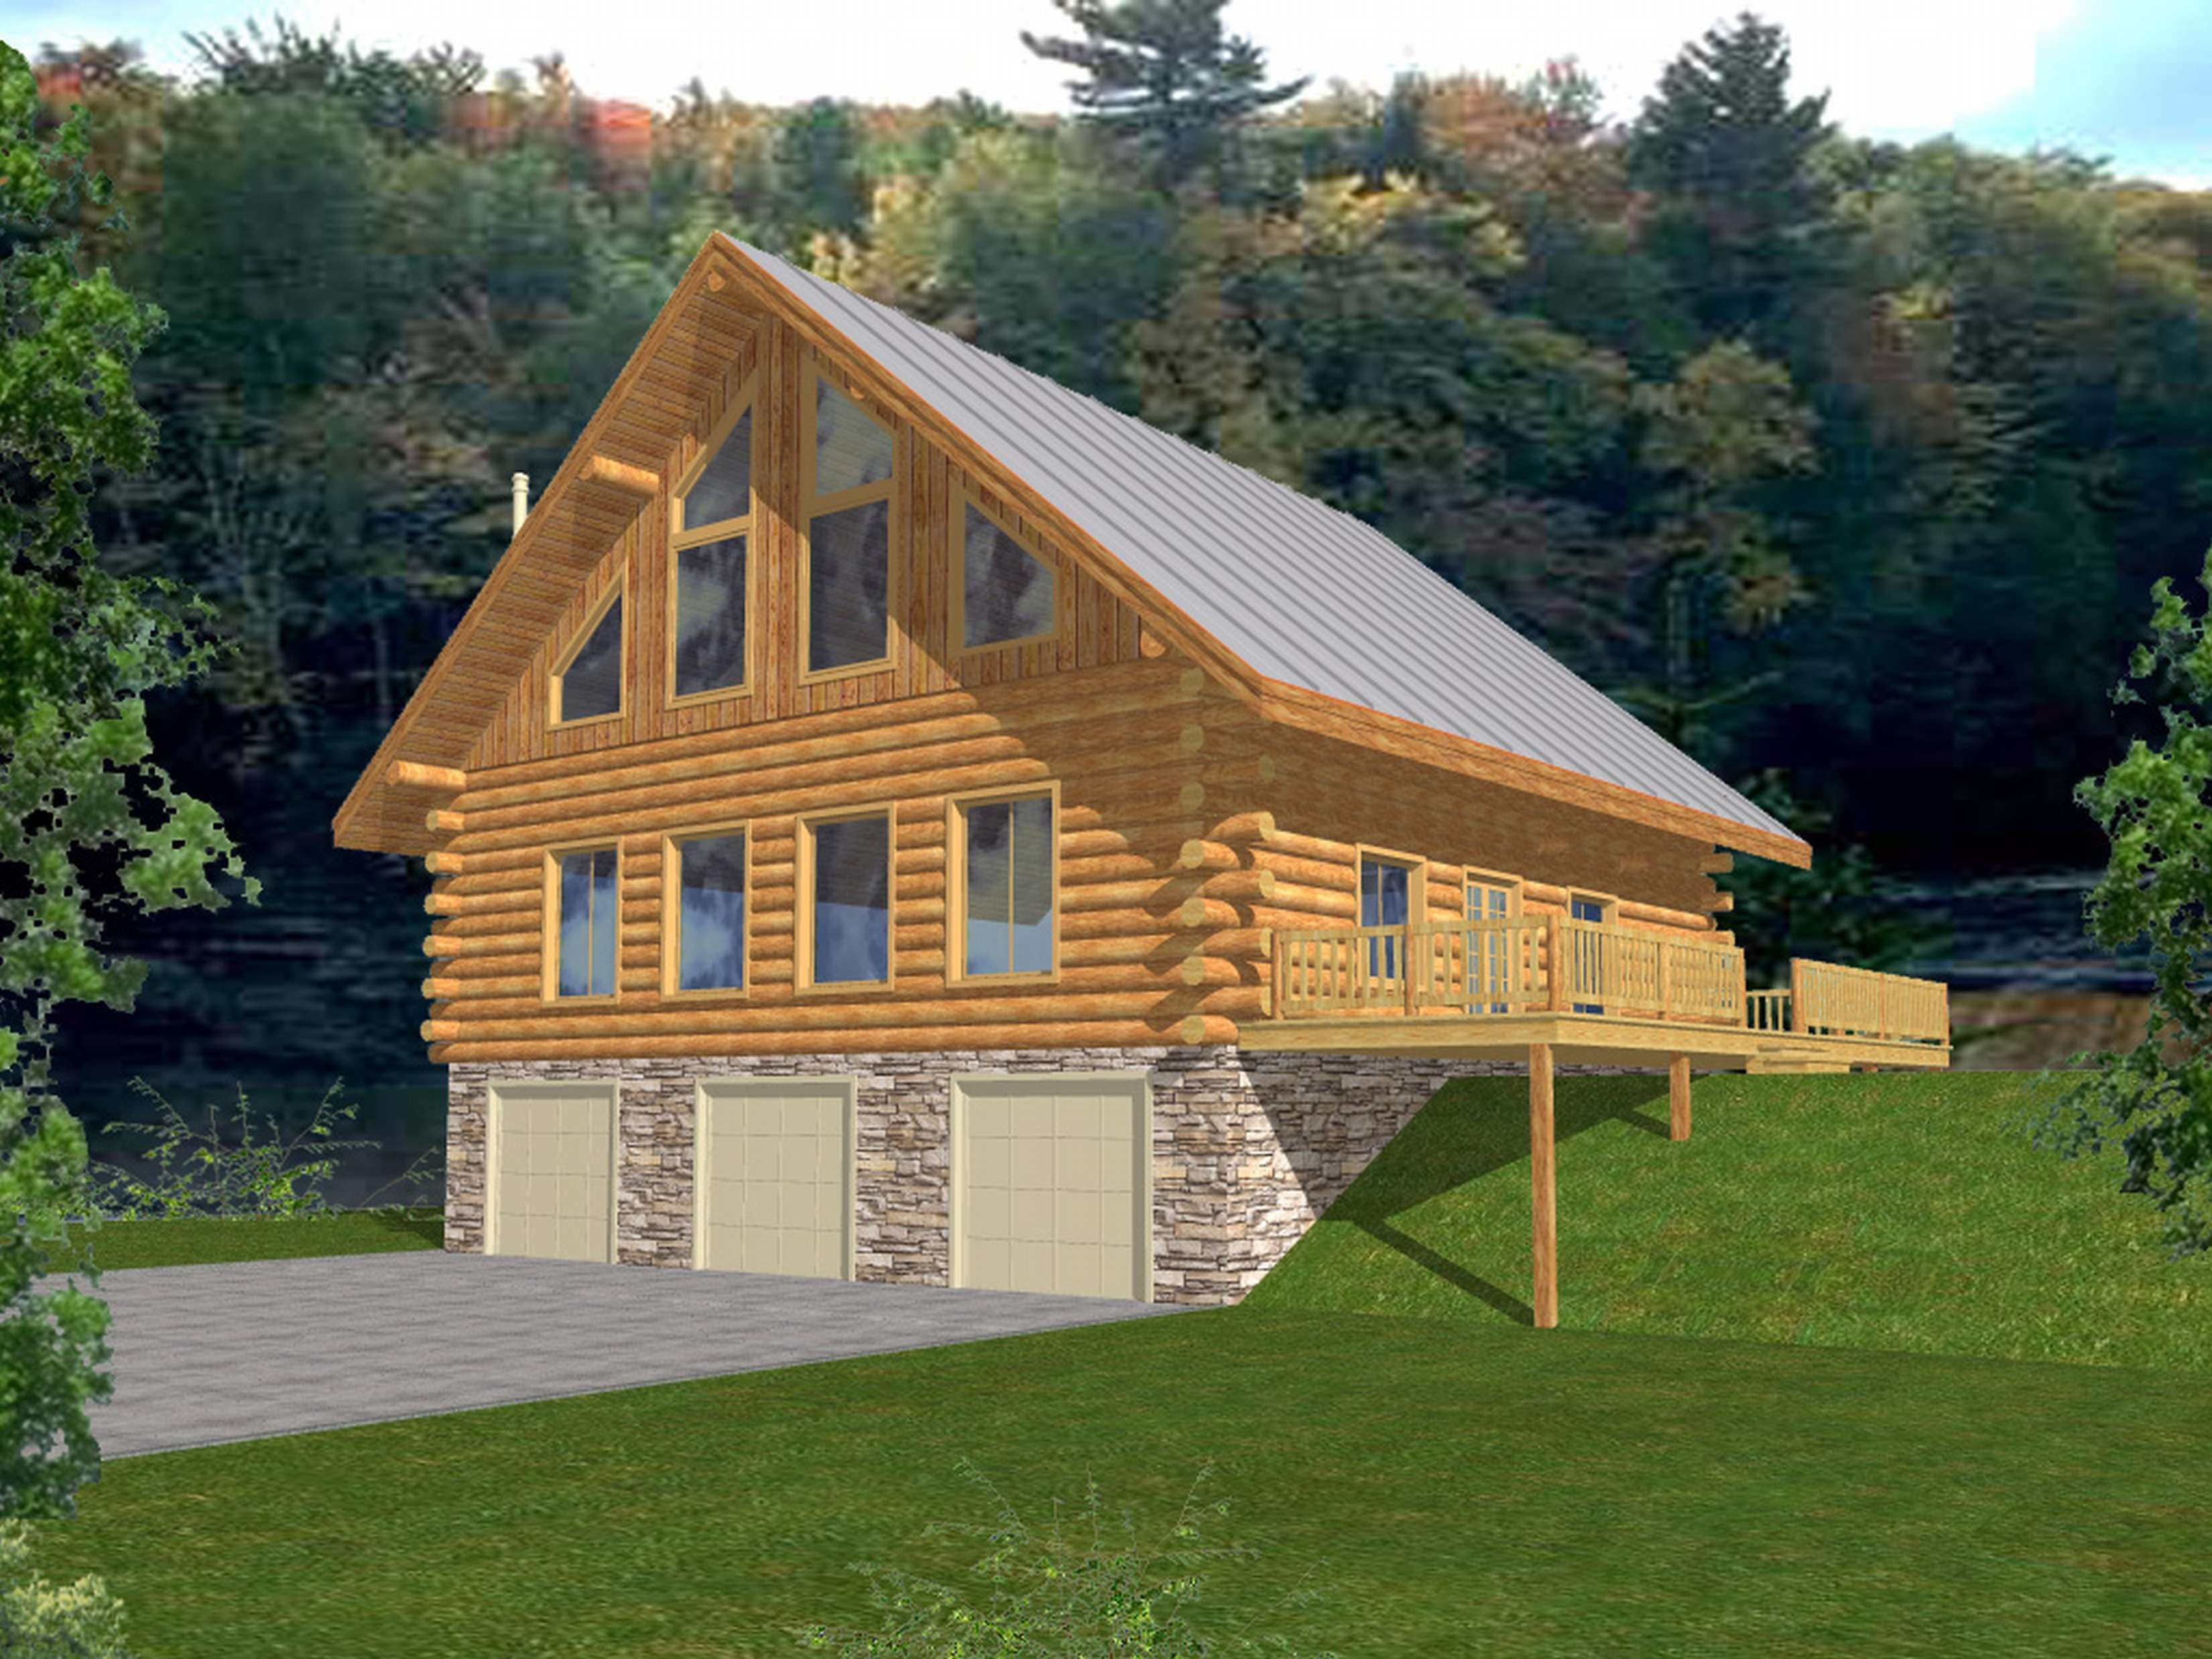 fendi residence designed by rglobe architecture keribrownhomes log home style cabin design coast mountain homes architecture house with basement garage